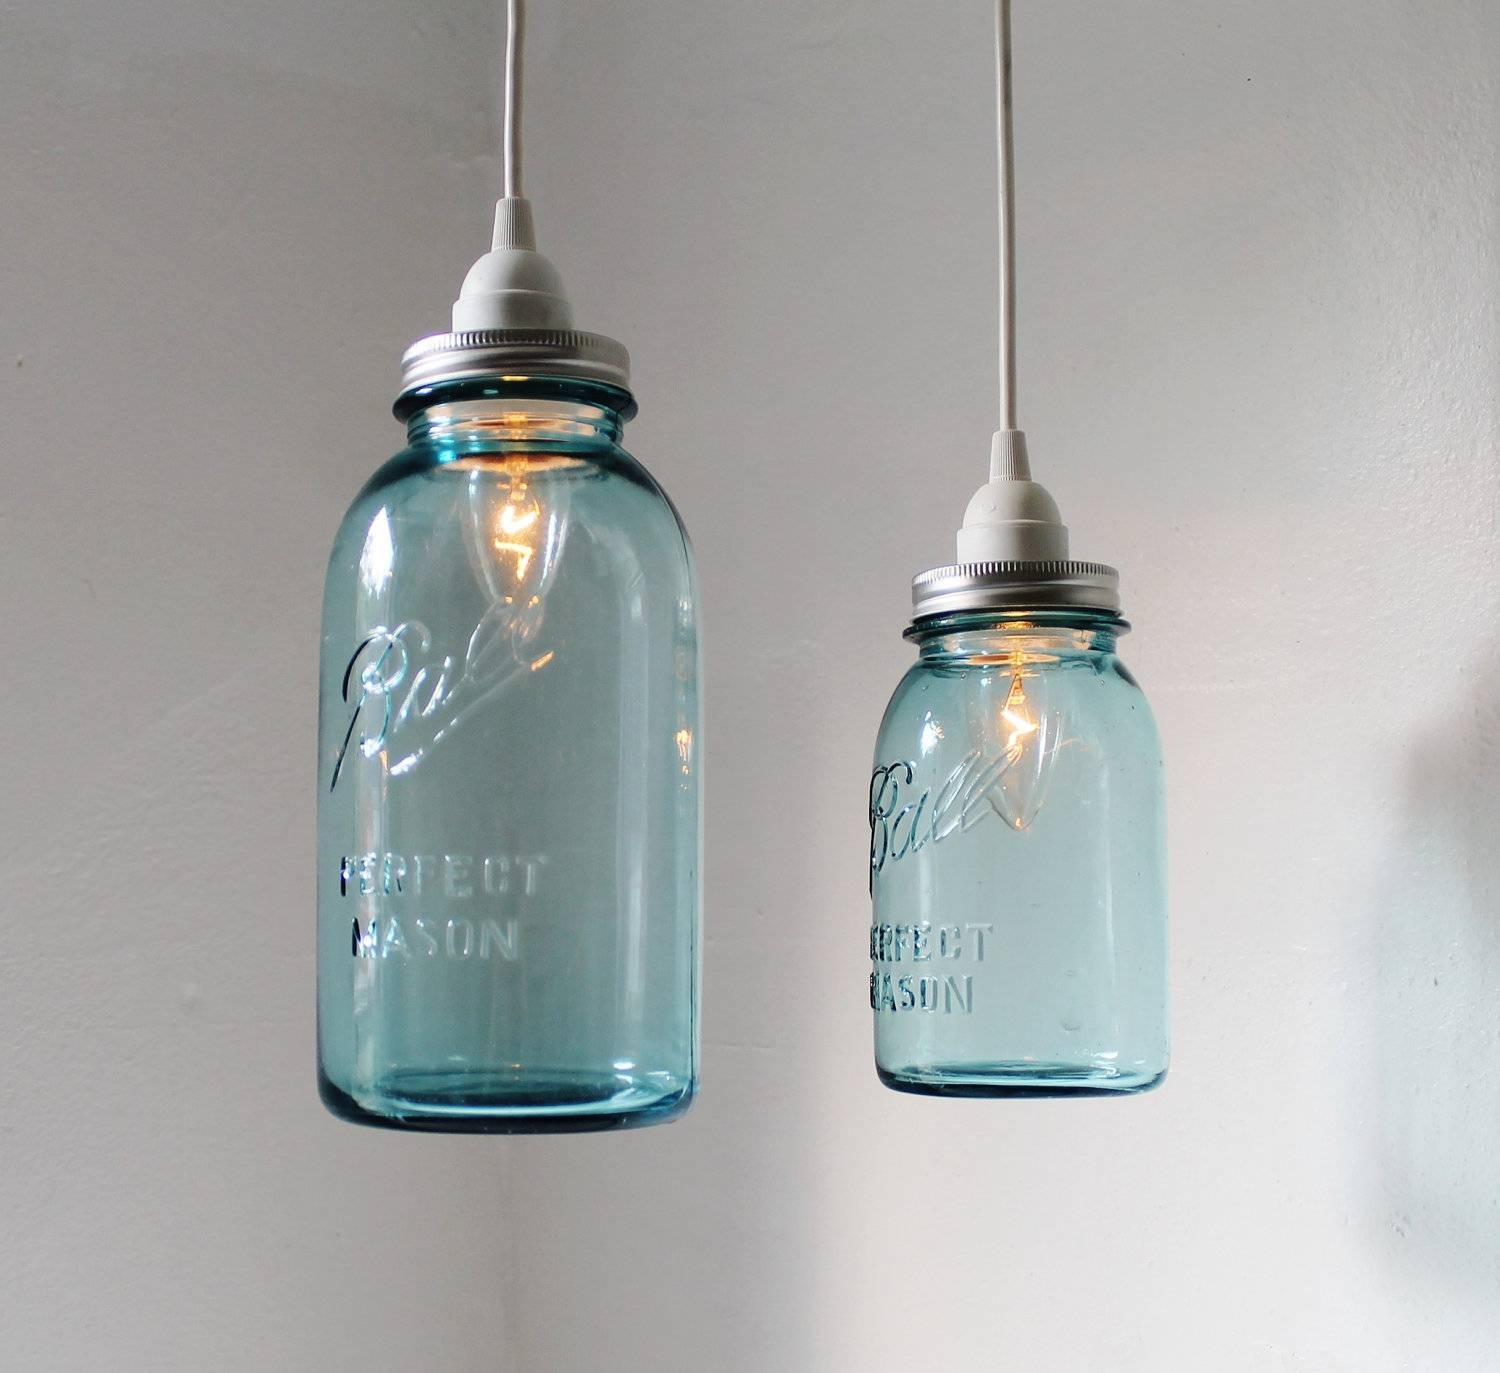 Sea Glass Mason Jar Pendant Lights Set Of 2 Hanging Antique for Blue Mason Jar Lights Fixtures (Image 15 of 15)